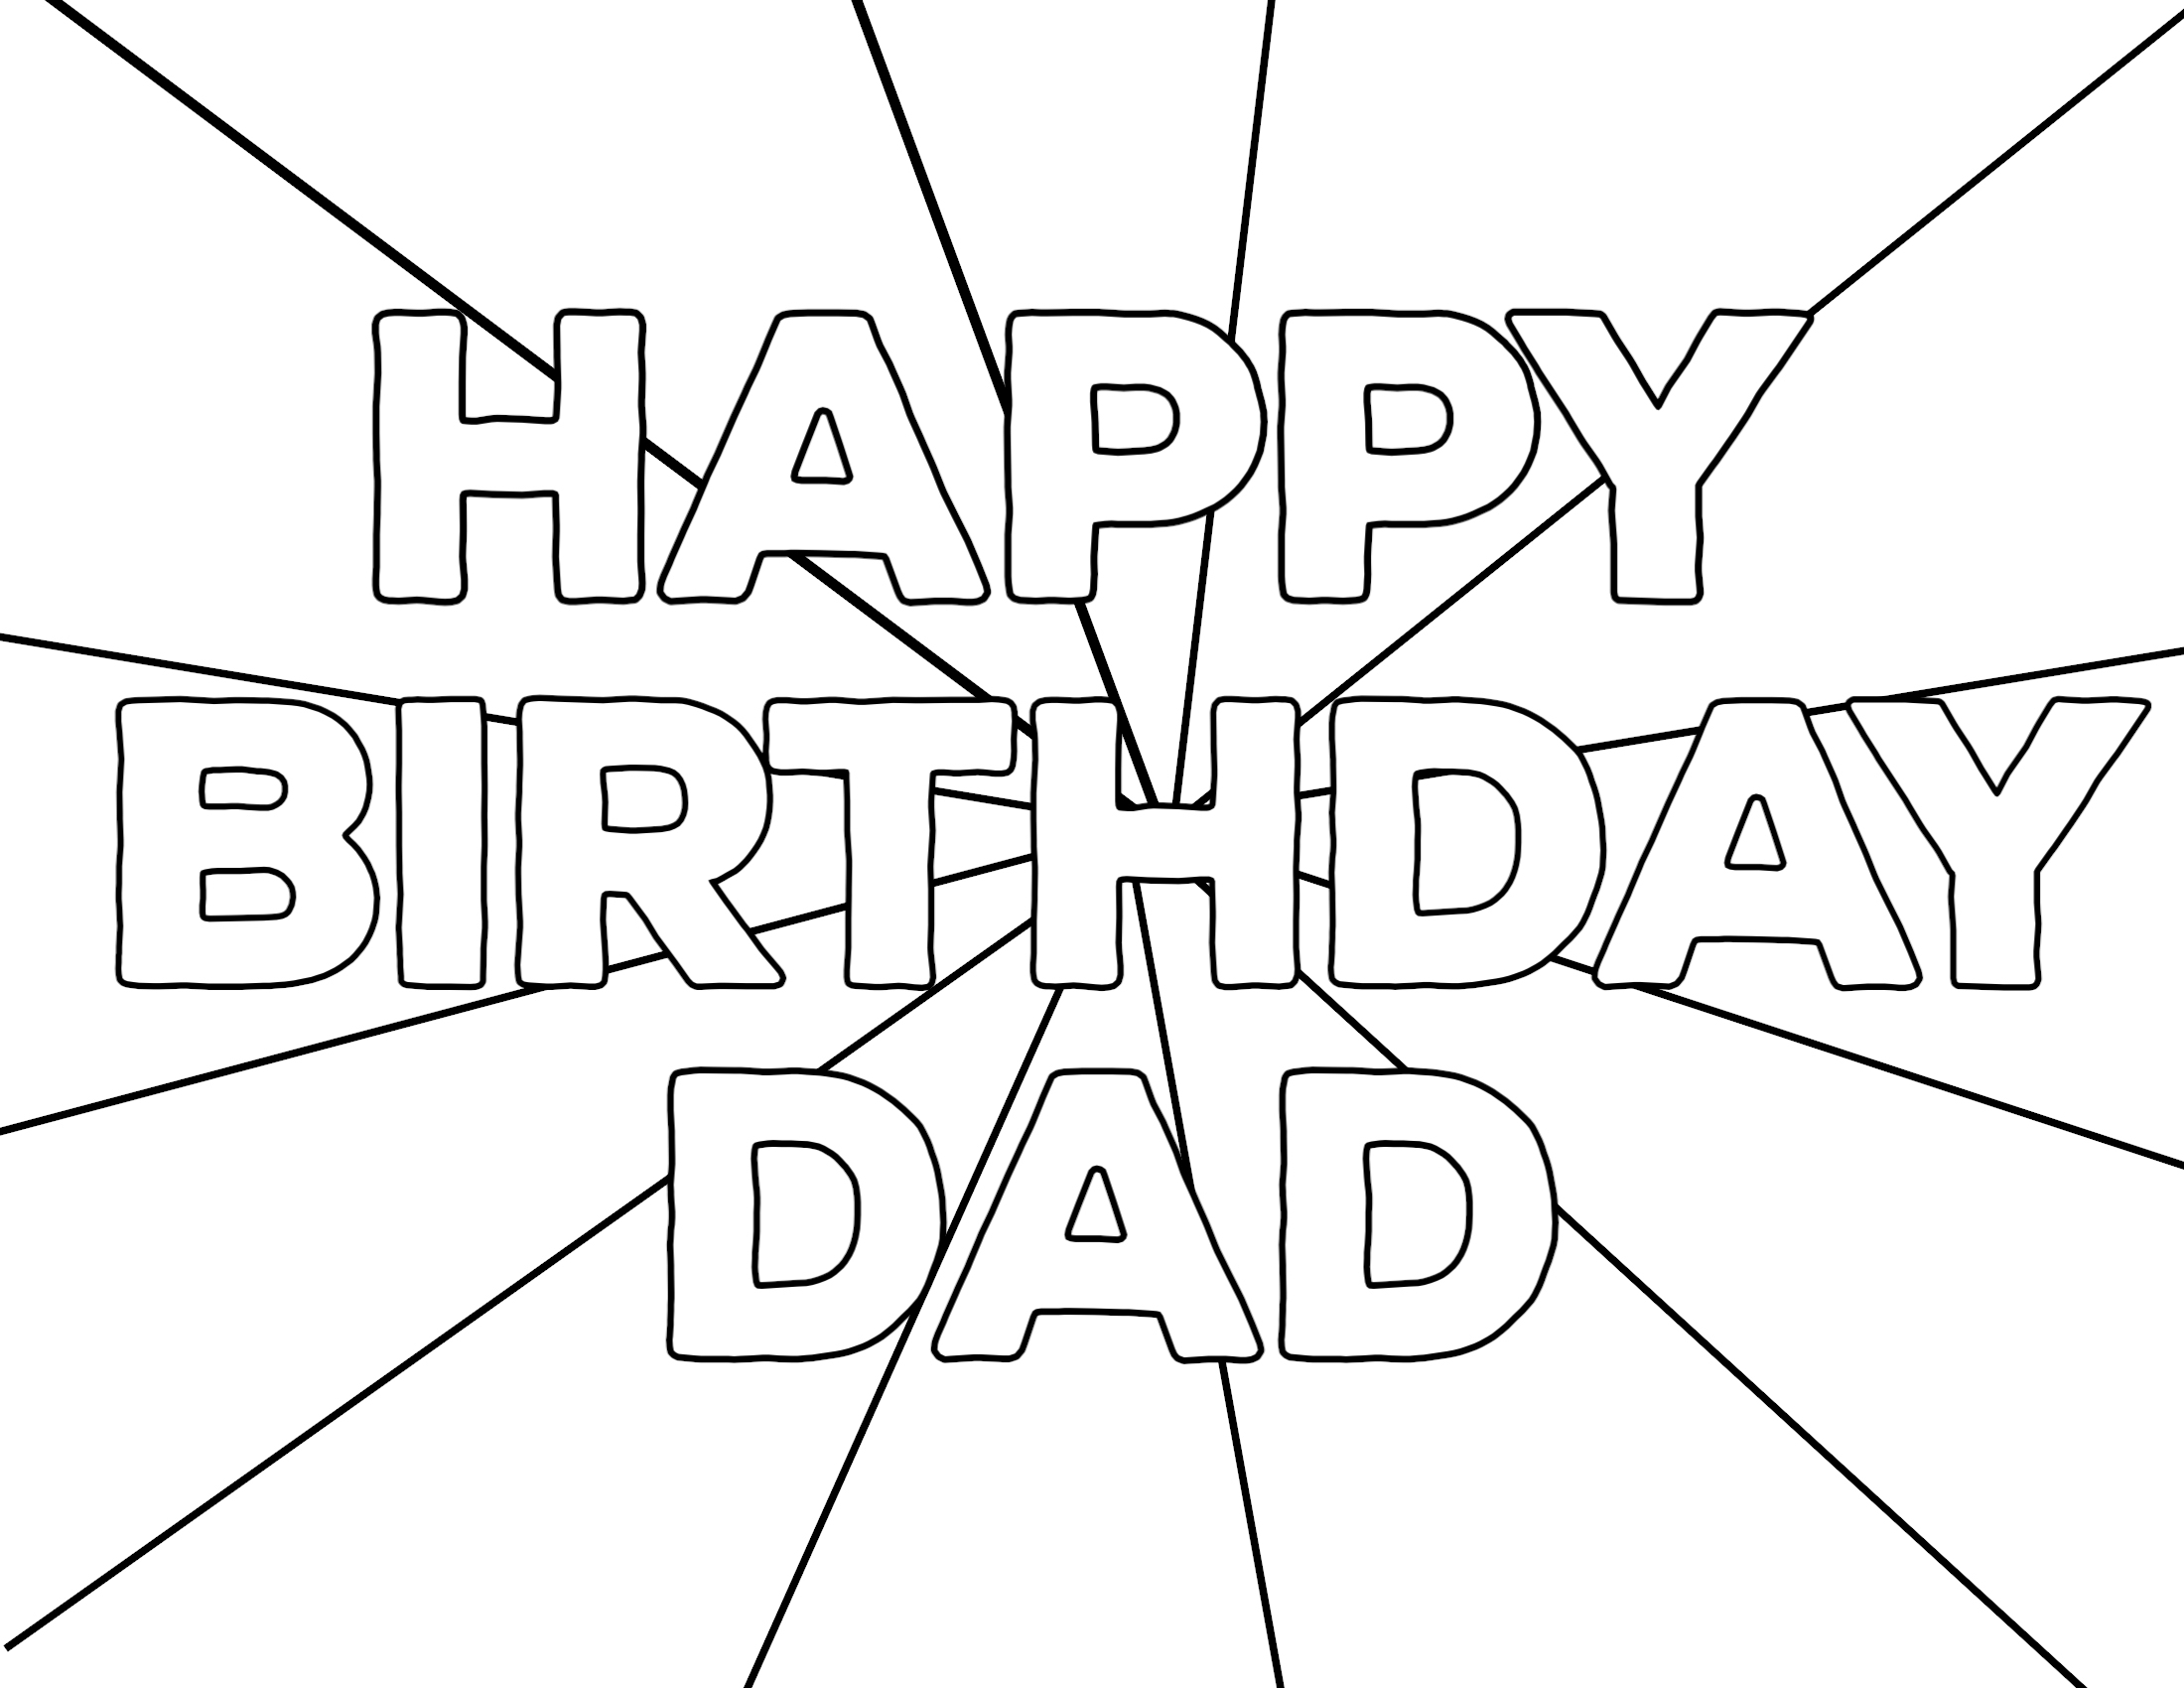 Dad Birthday Coloring Pages Happy Birthday Coloring Pages Coloring Pages For Kids And Adults